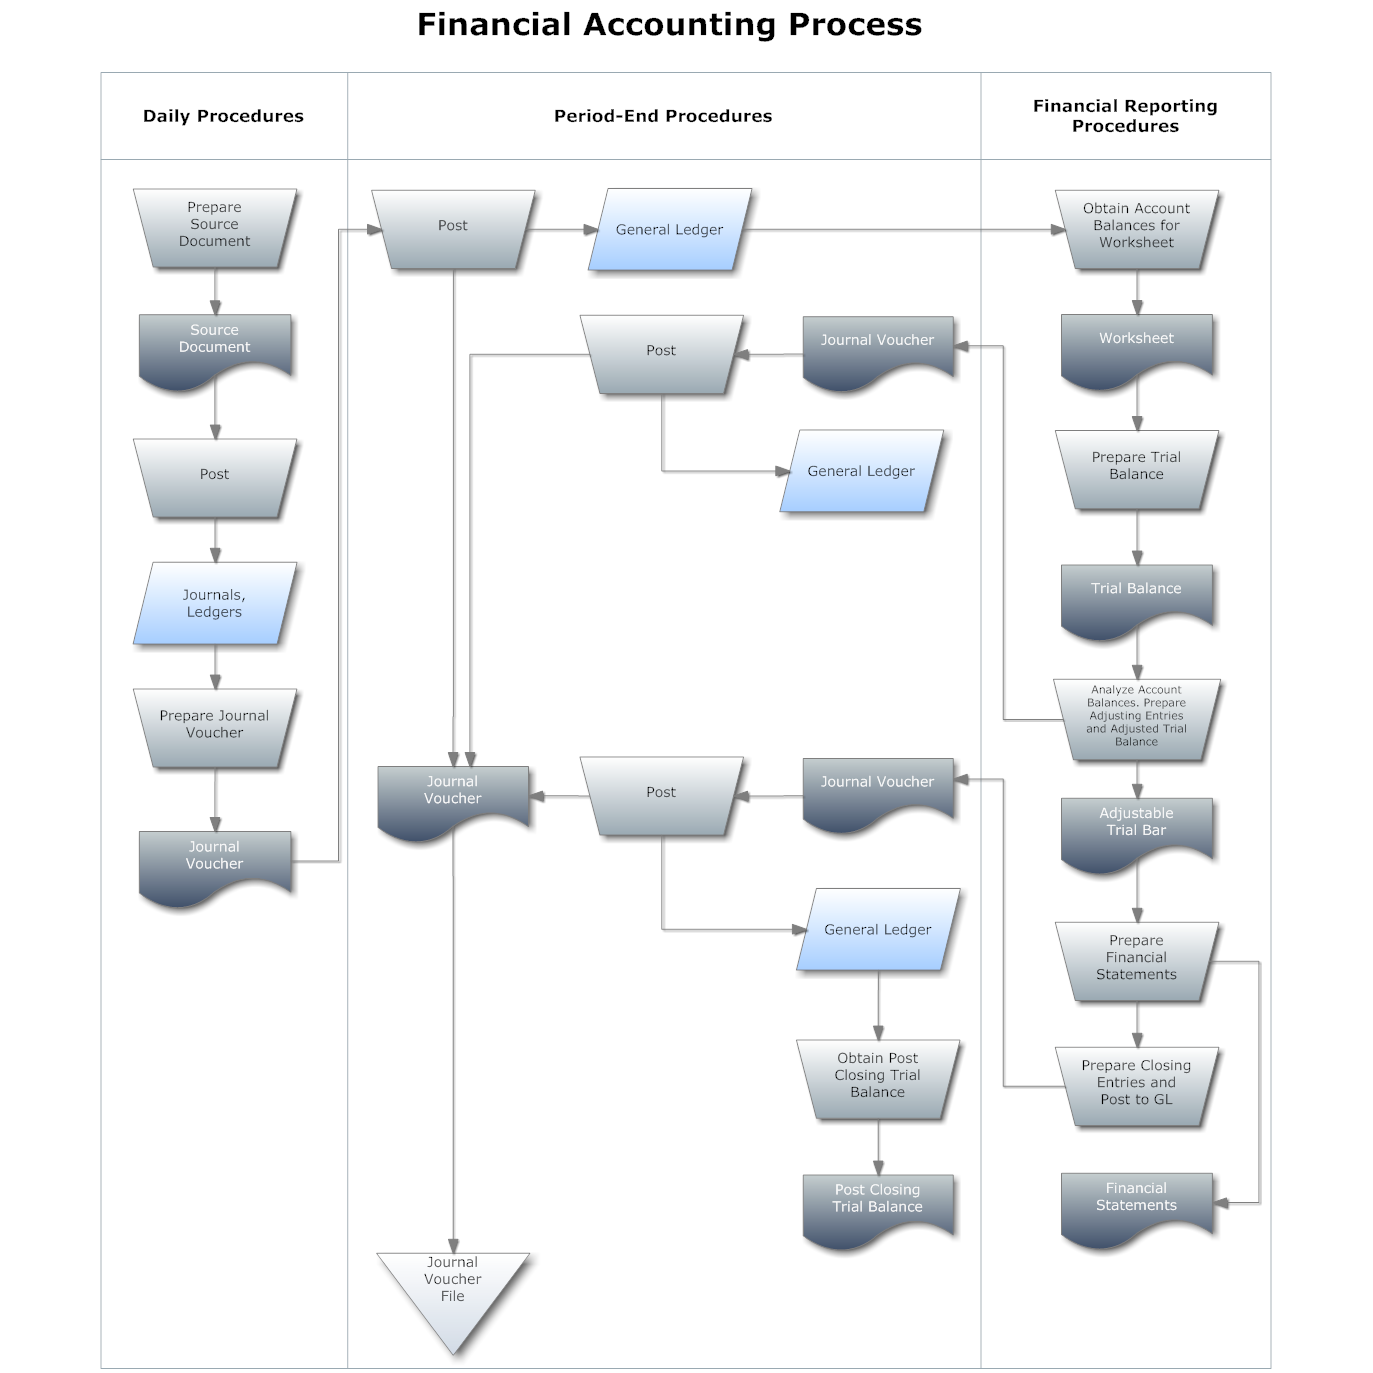 accounting flowchart Flowchart Example - Financial Accounting Process | brokerage ...